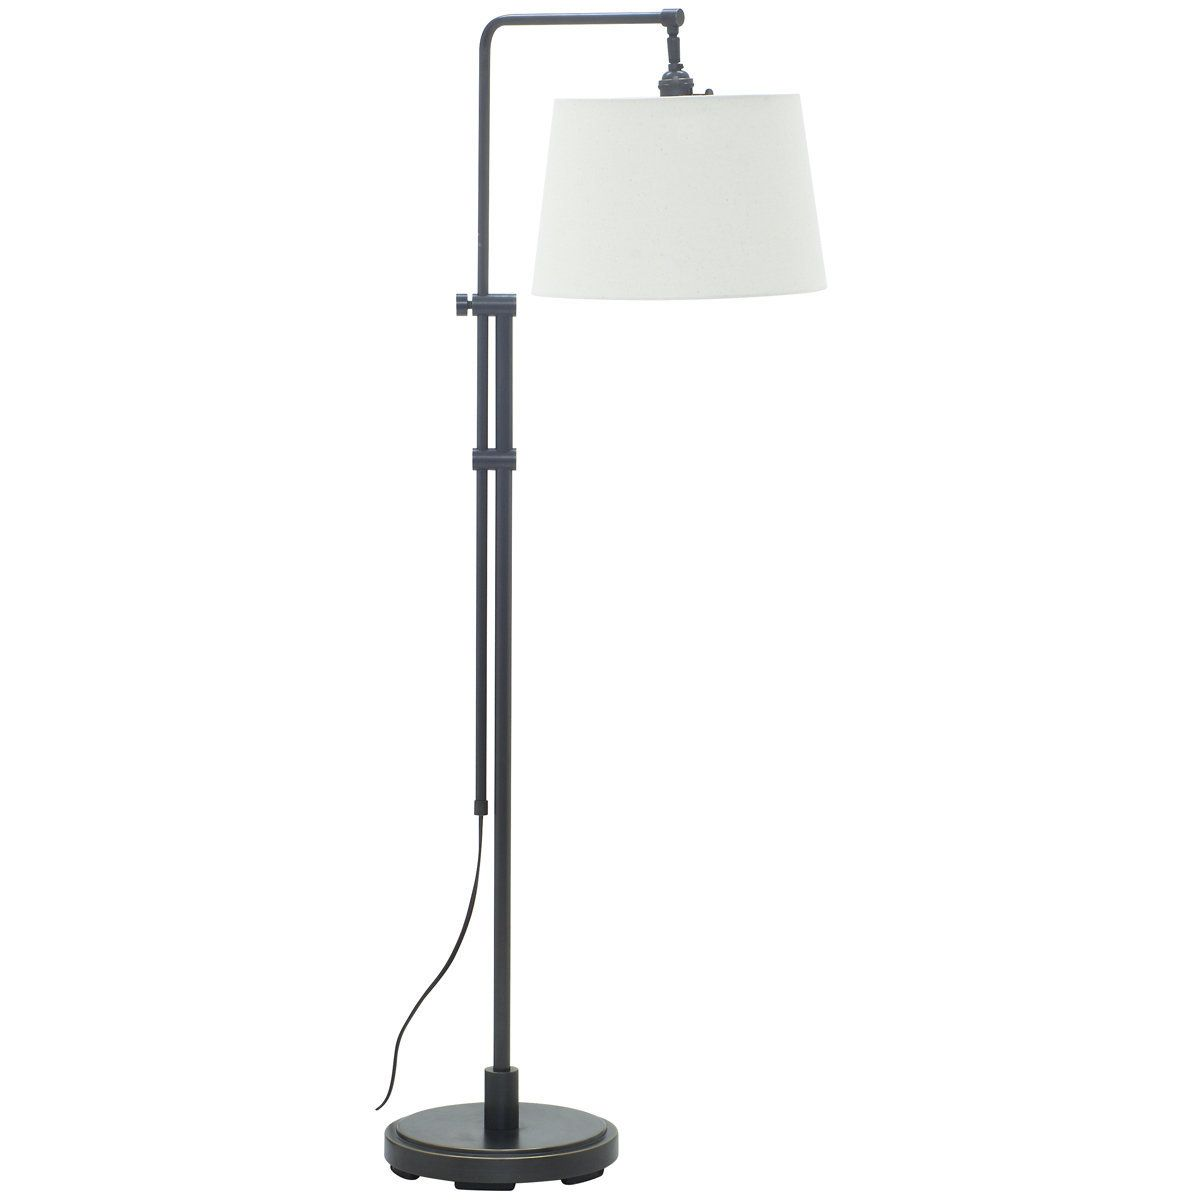 Functional modern adjustable floor lamp